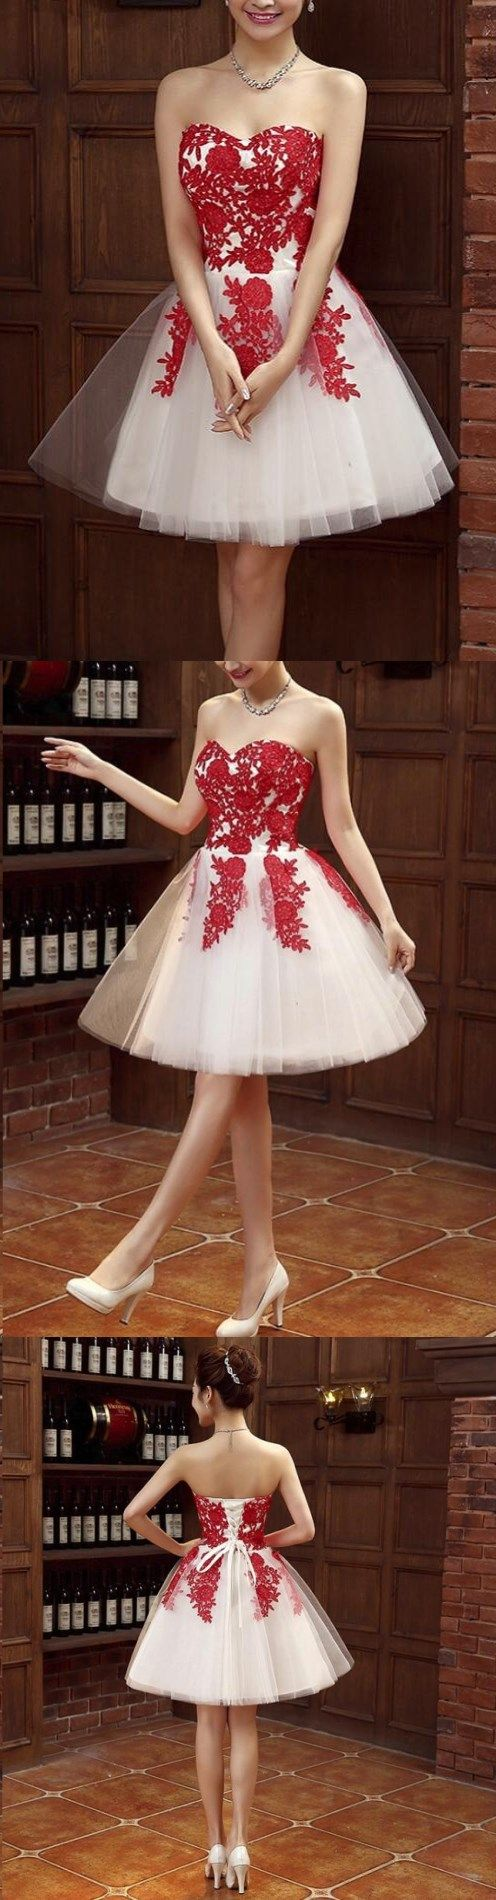 Cheap homecoming dresses aline laceup simple short prom dress cute